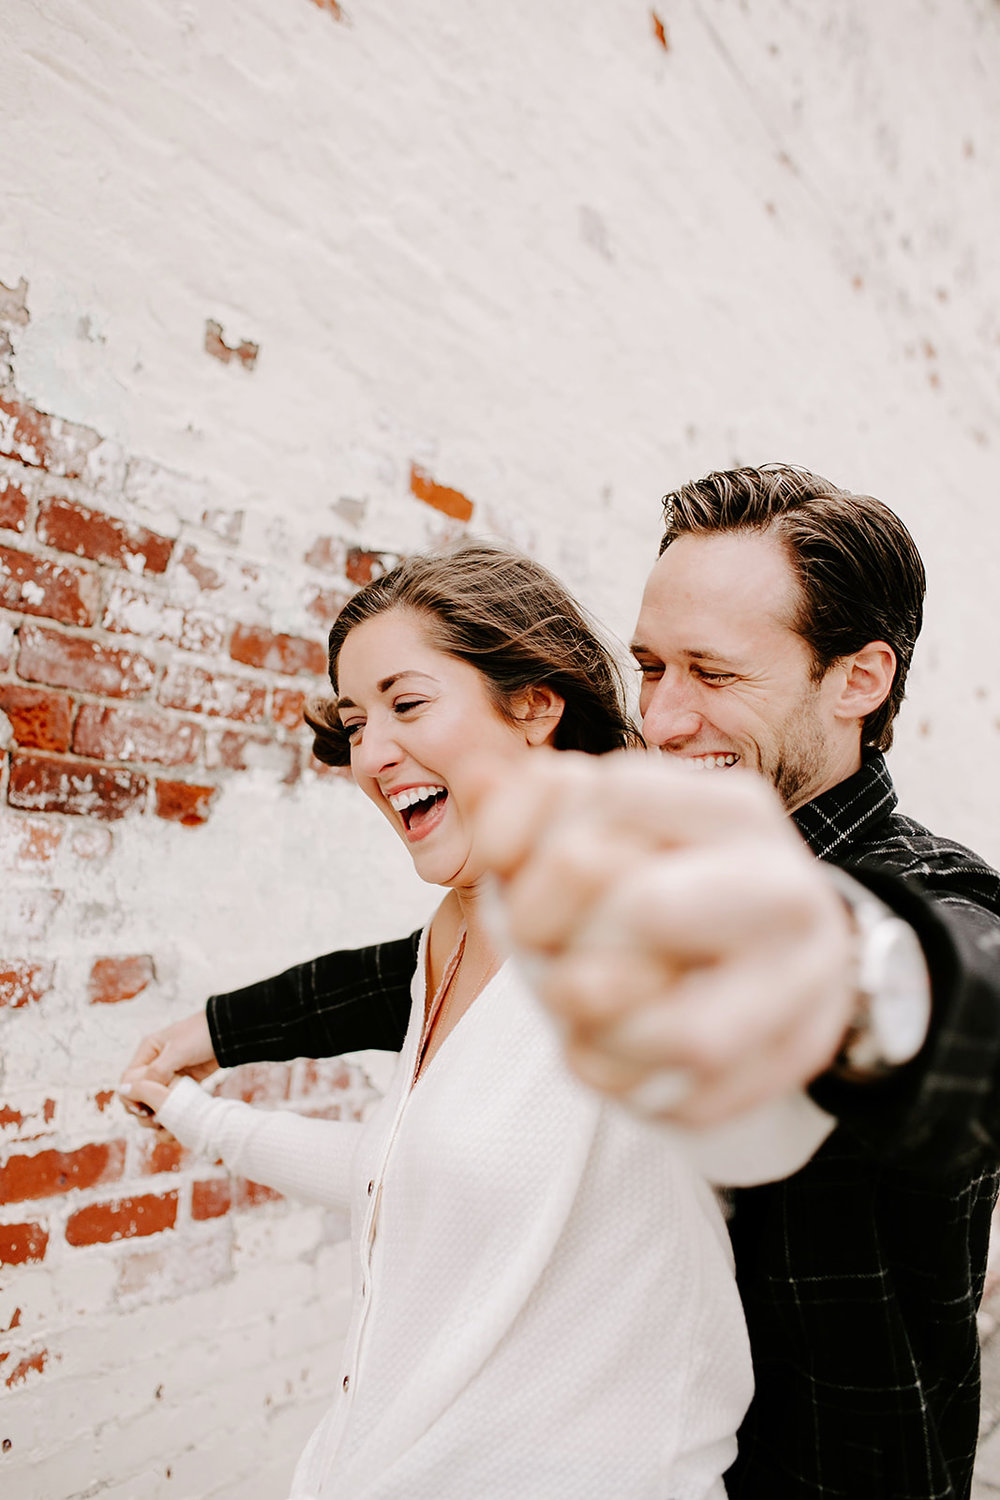 Alex and Andy Engagement Session in Noblesville Indiana by Emily Elyse Wehner Photography LLC-91.jpg